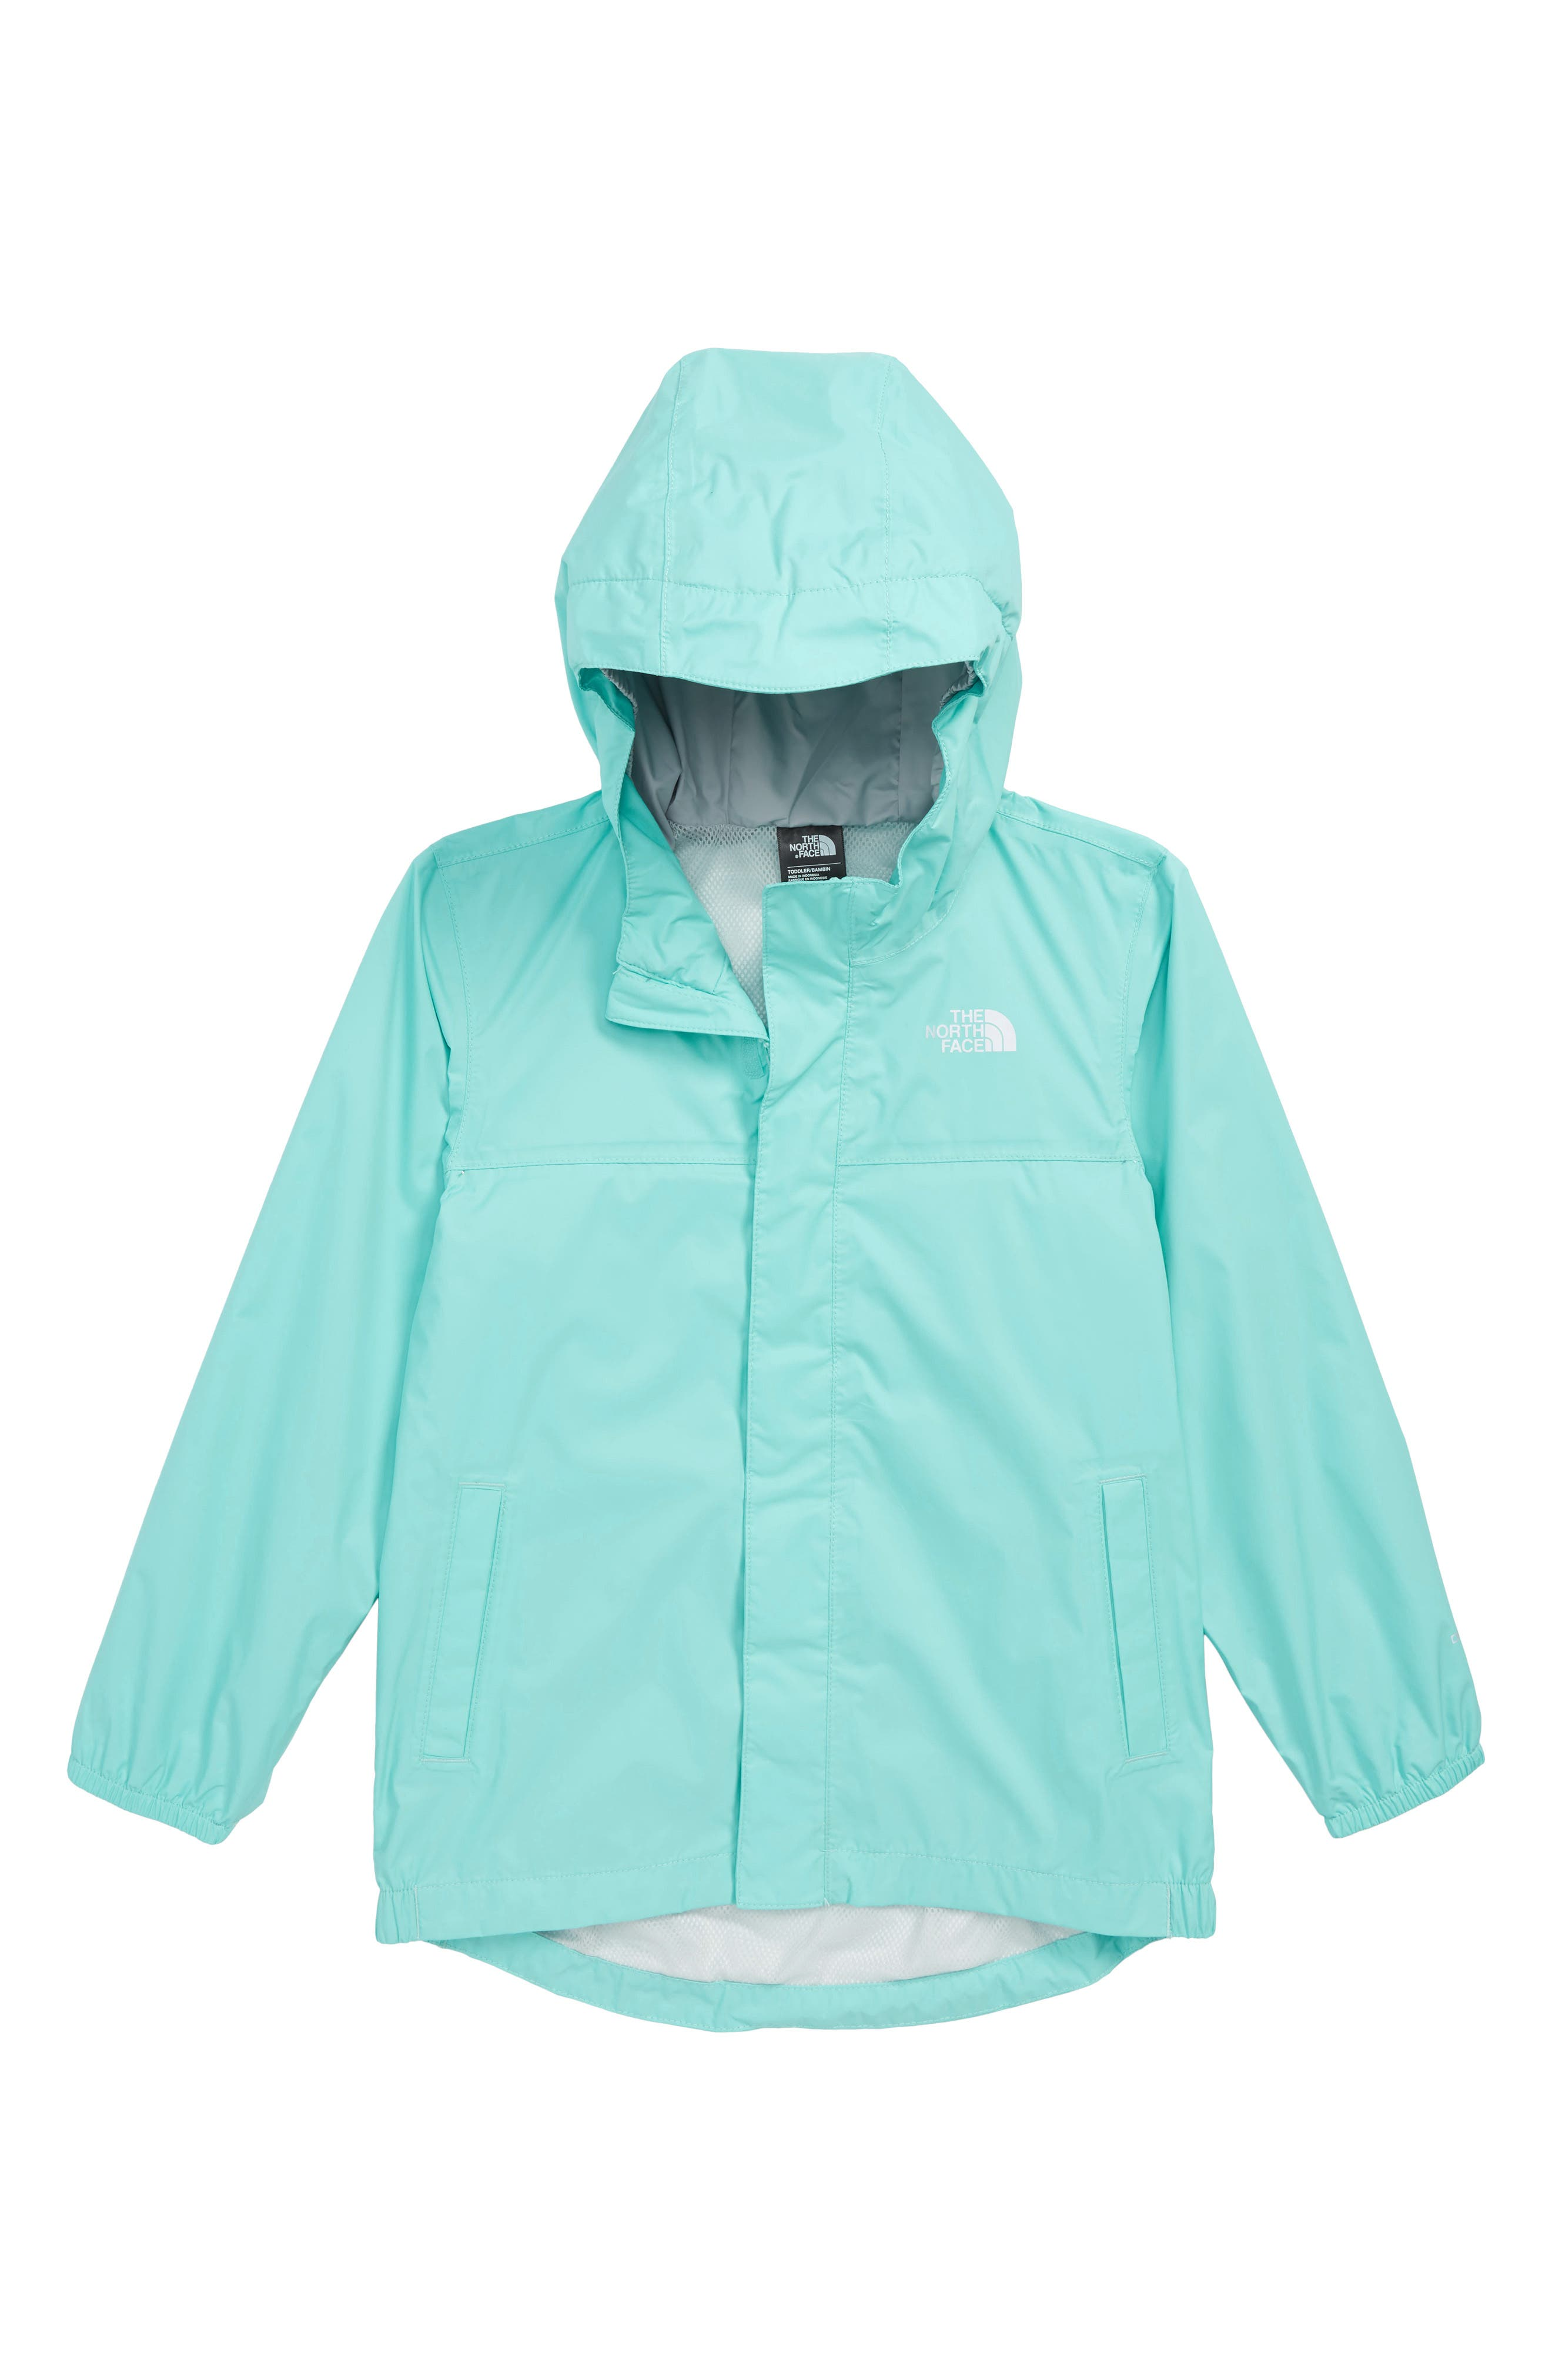 Tailout Hooded Rain Jacket,                         Main,                         color, MINT BLUE